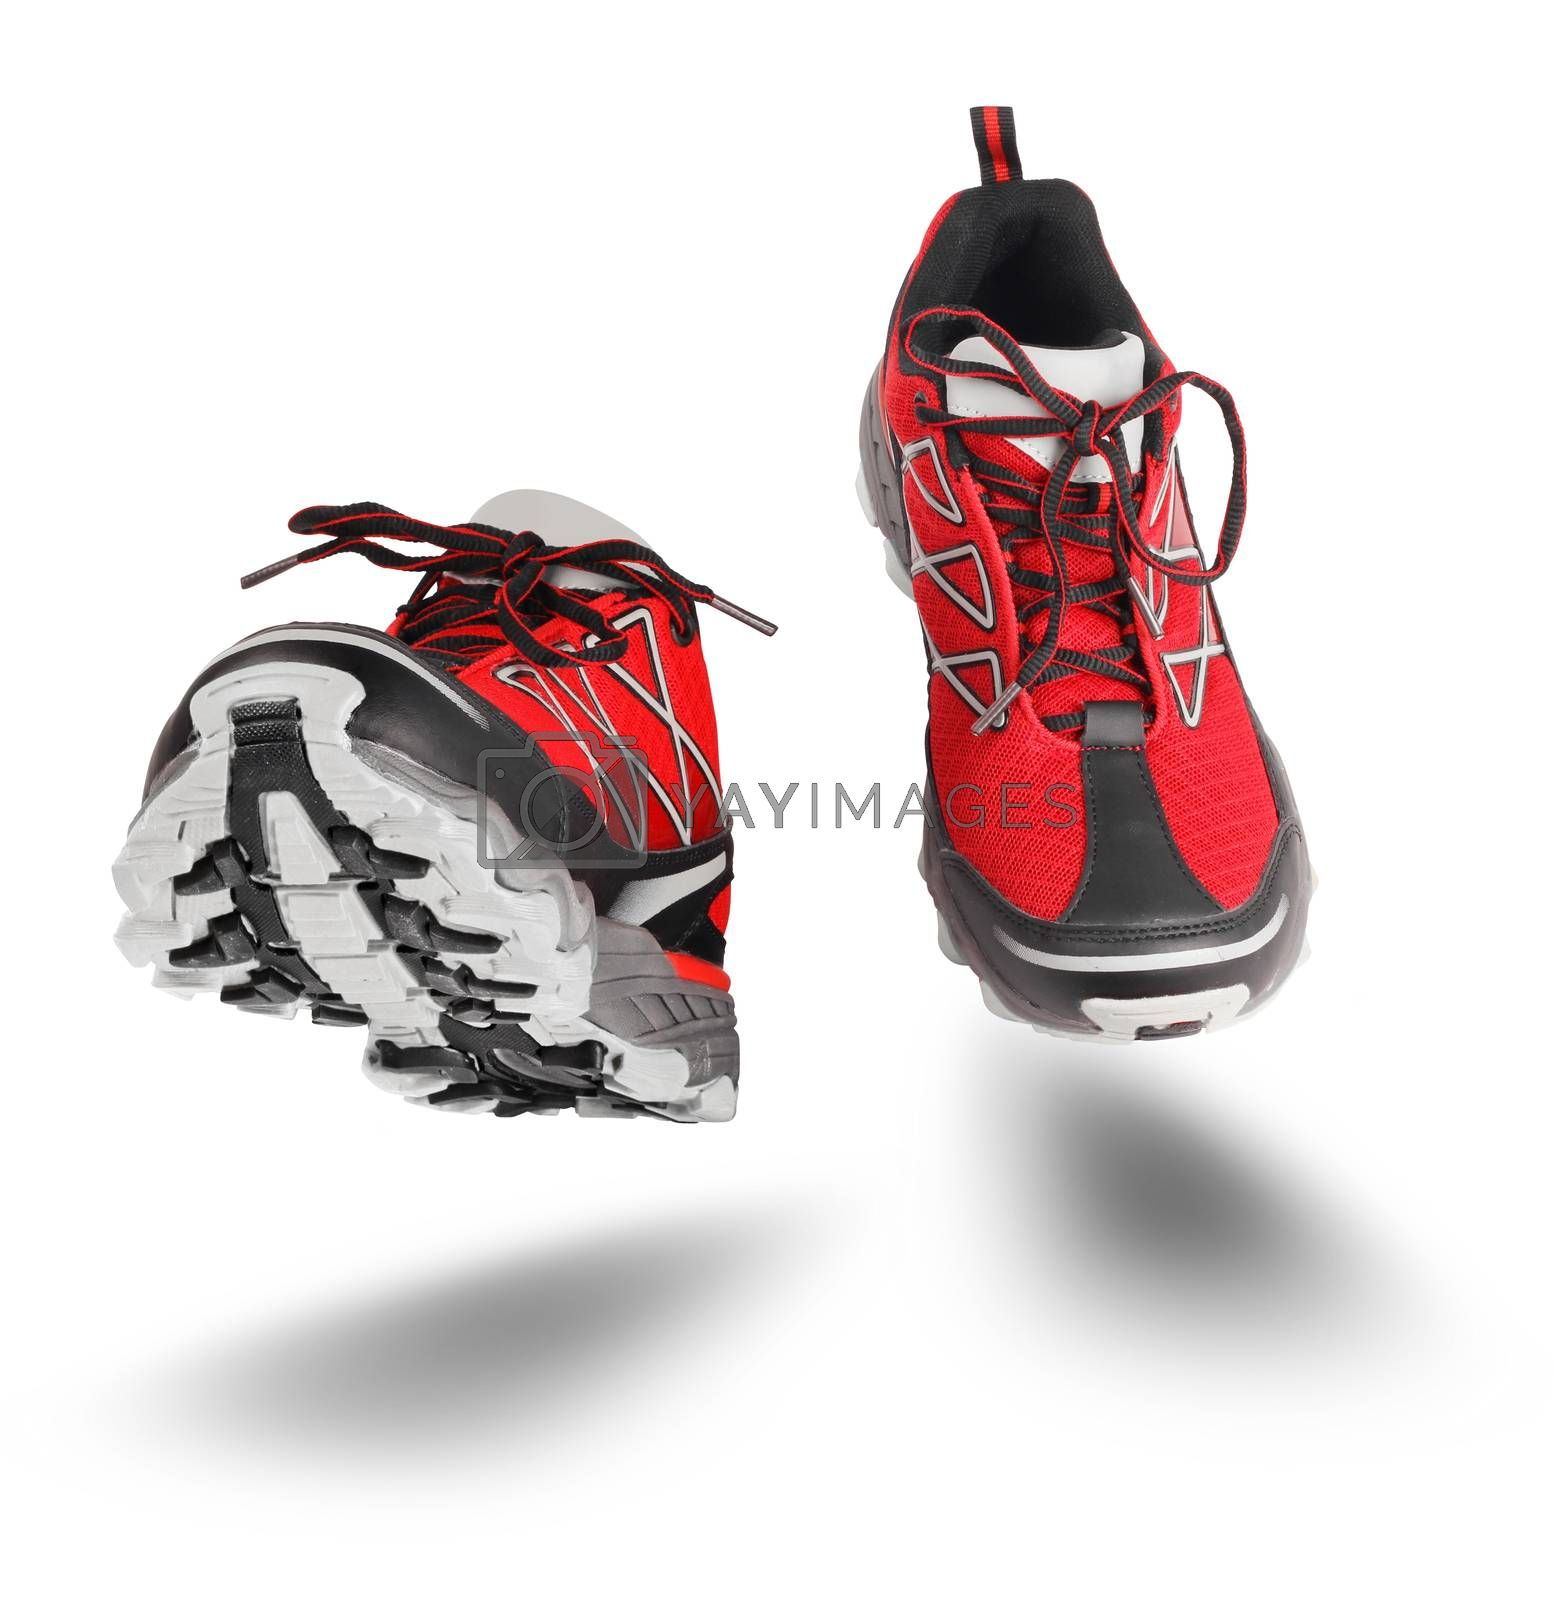 Red running sport shoes seen front, isolated on white background